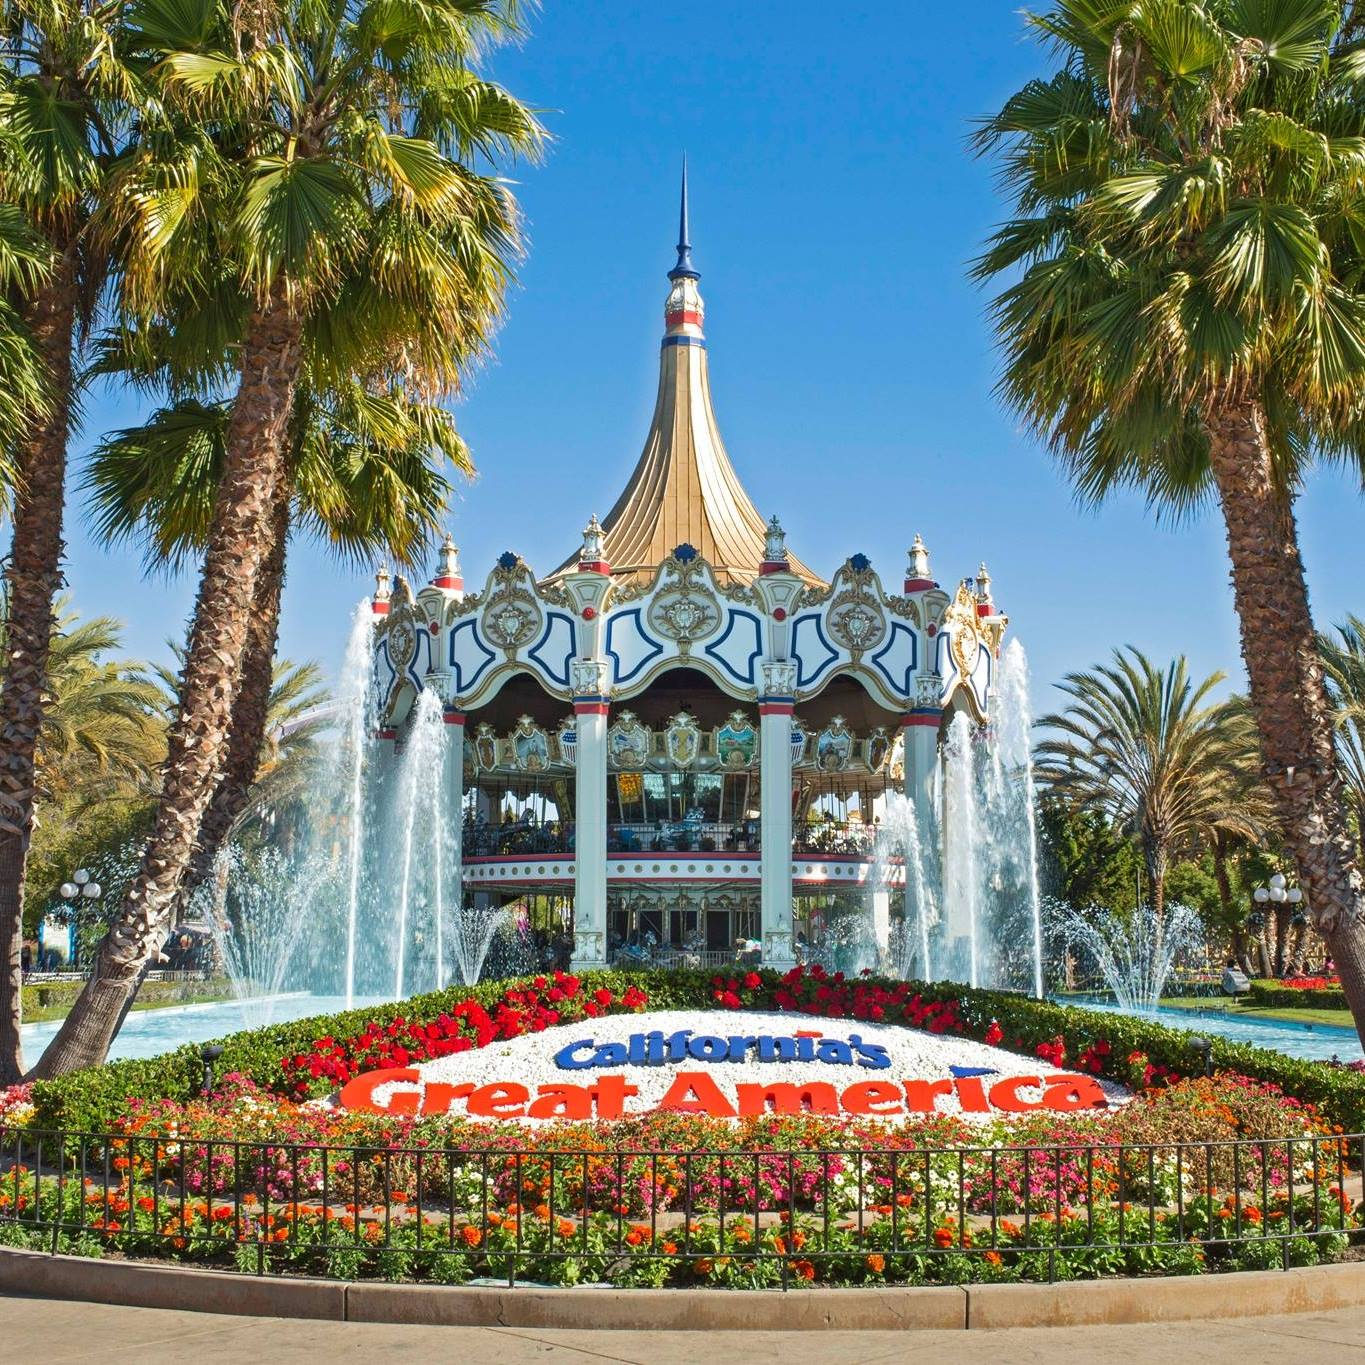 highlights - In addition to California's great america theme park Karen aitken Has designed many epic landscapes including The Gilroy Bonfante Gardens, the santa cruz beach boardwalk and Mission san juan bautista.